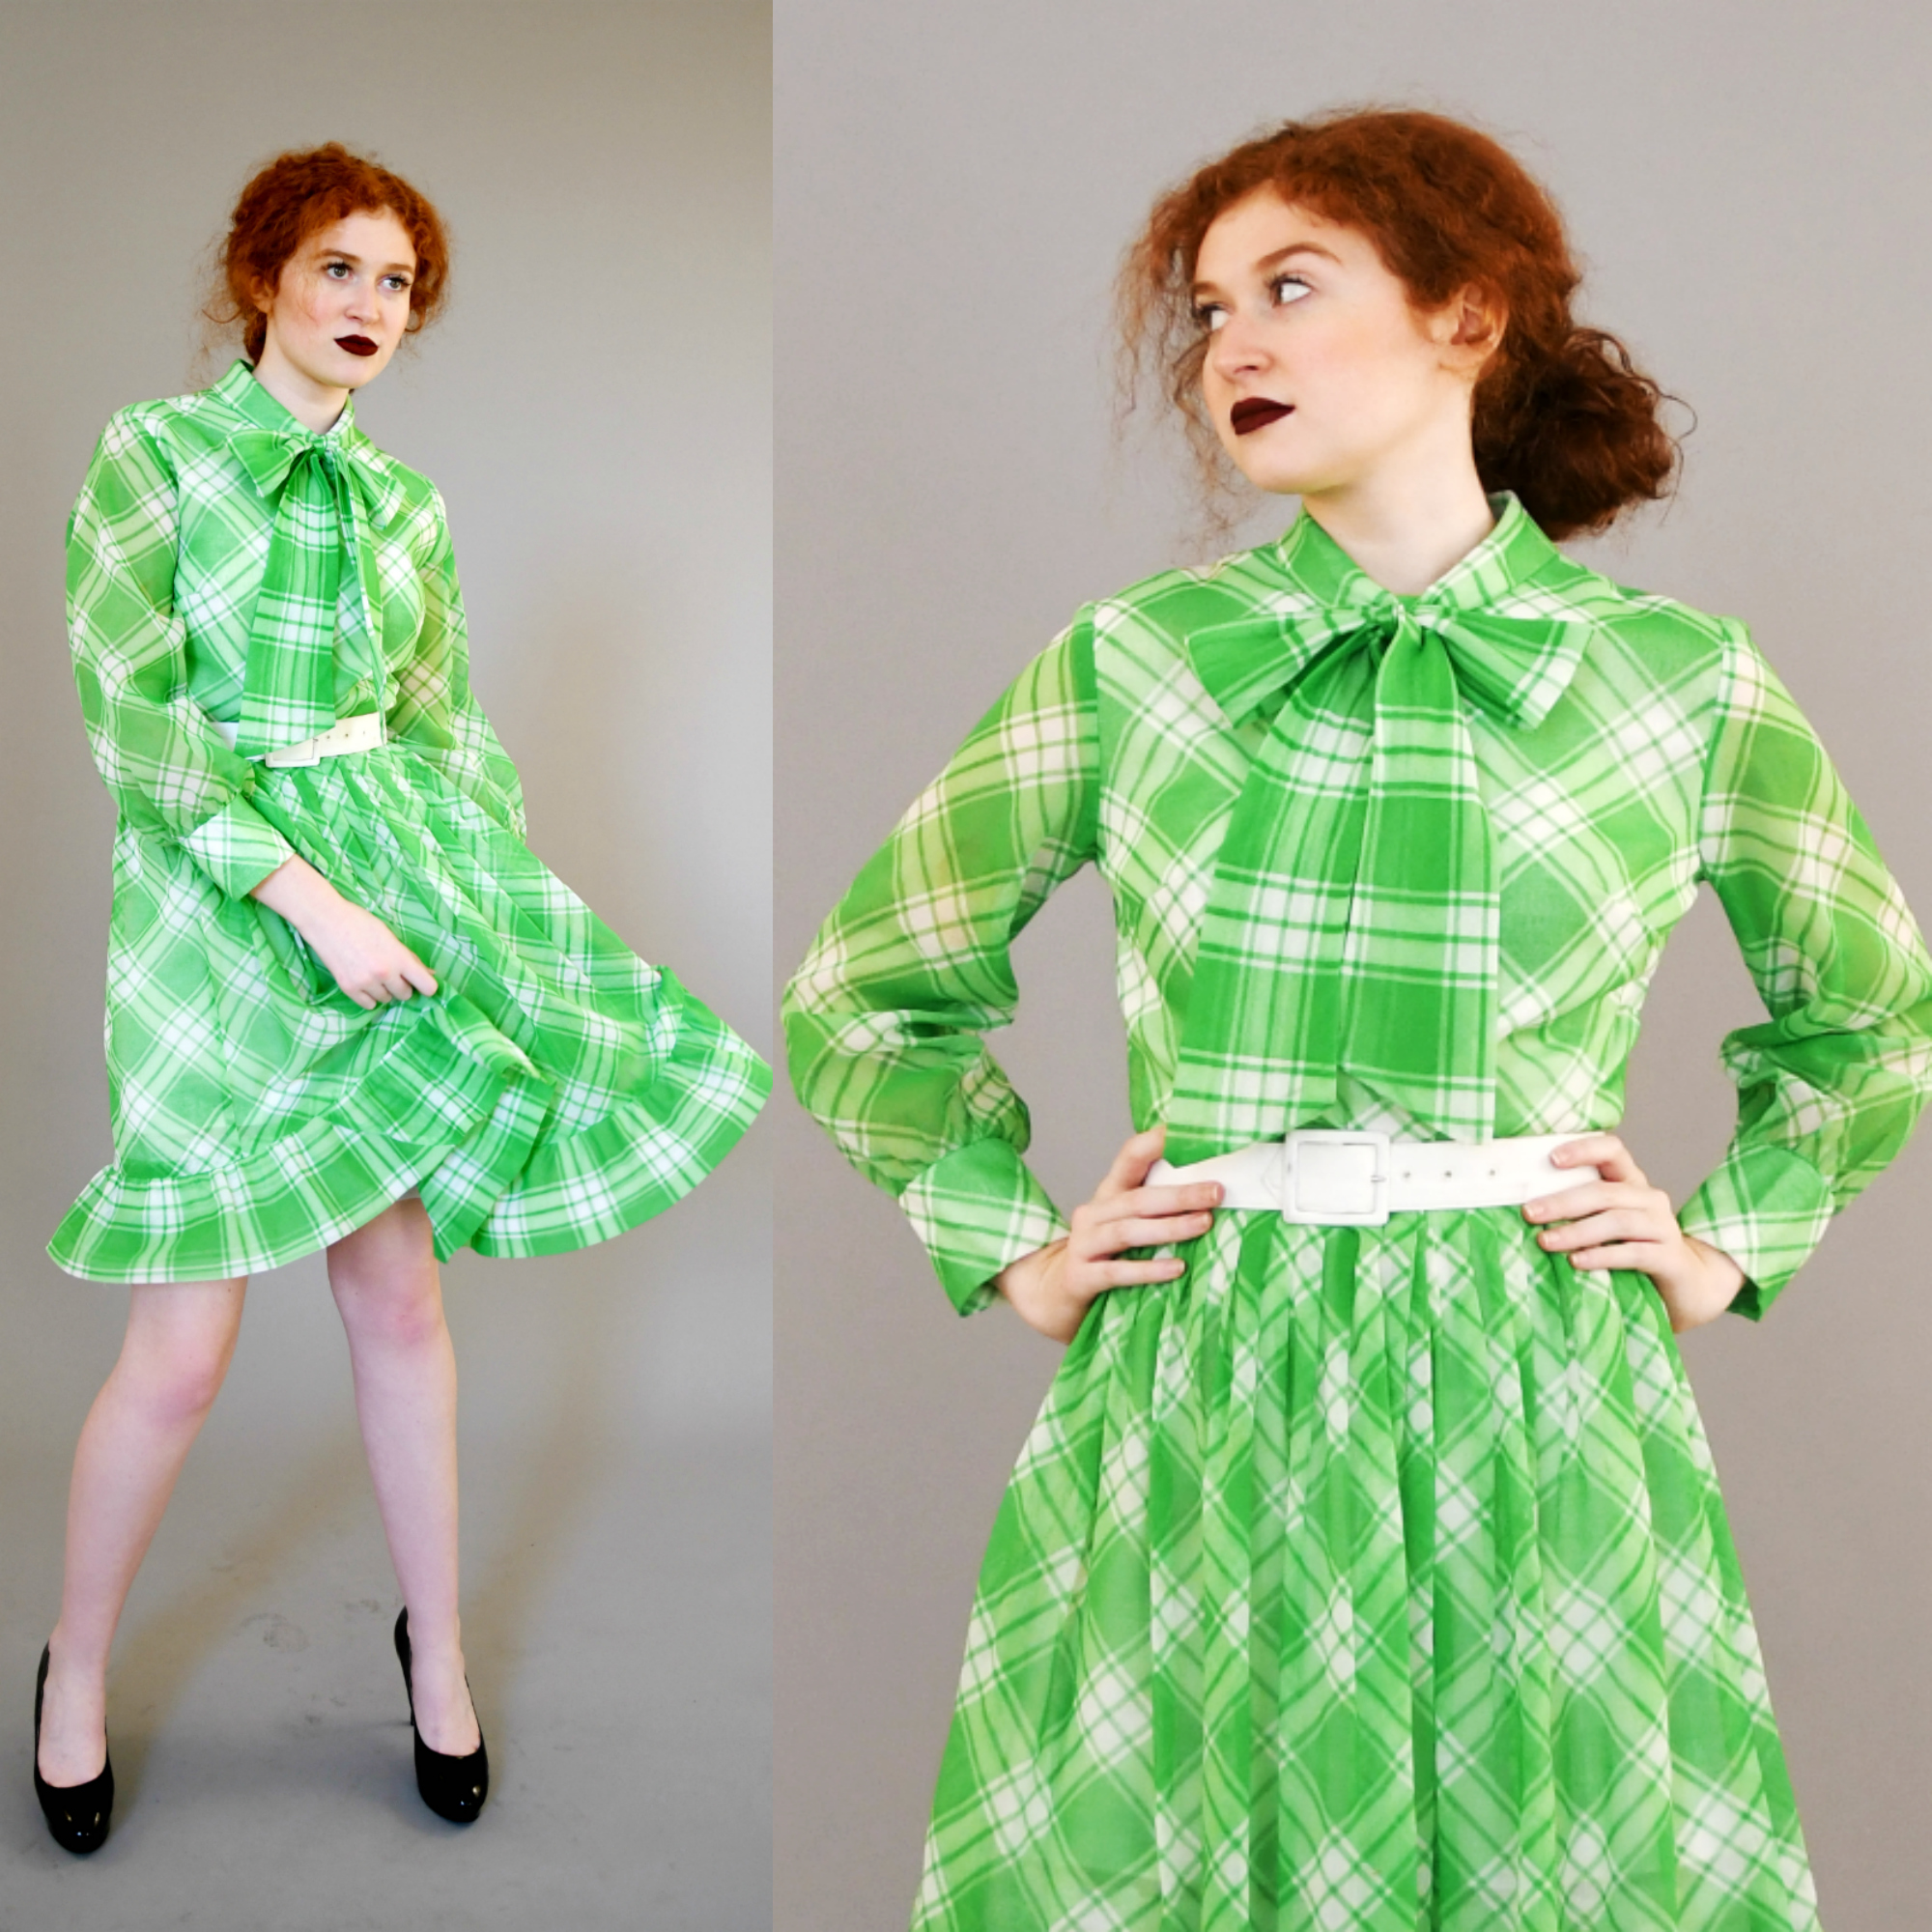 greendress.jpg